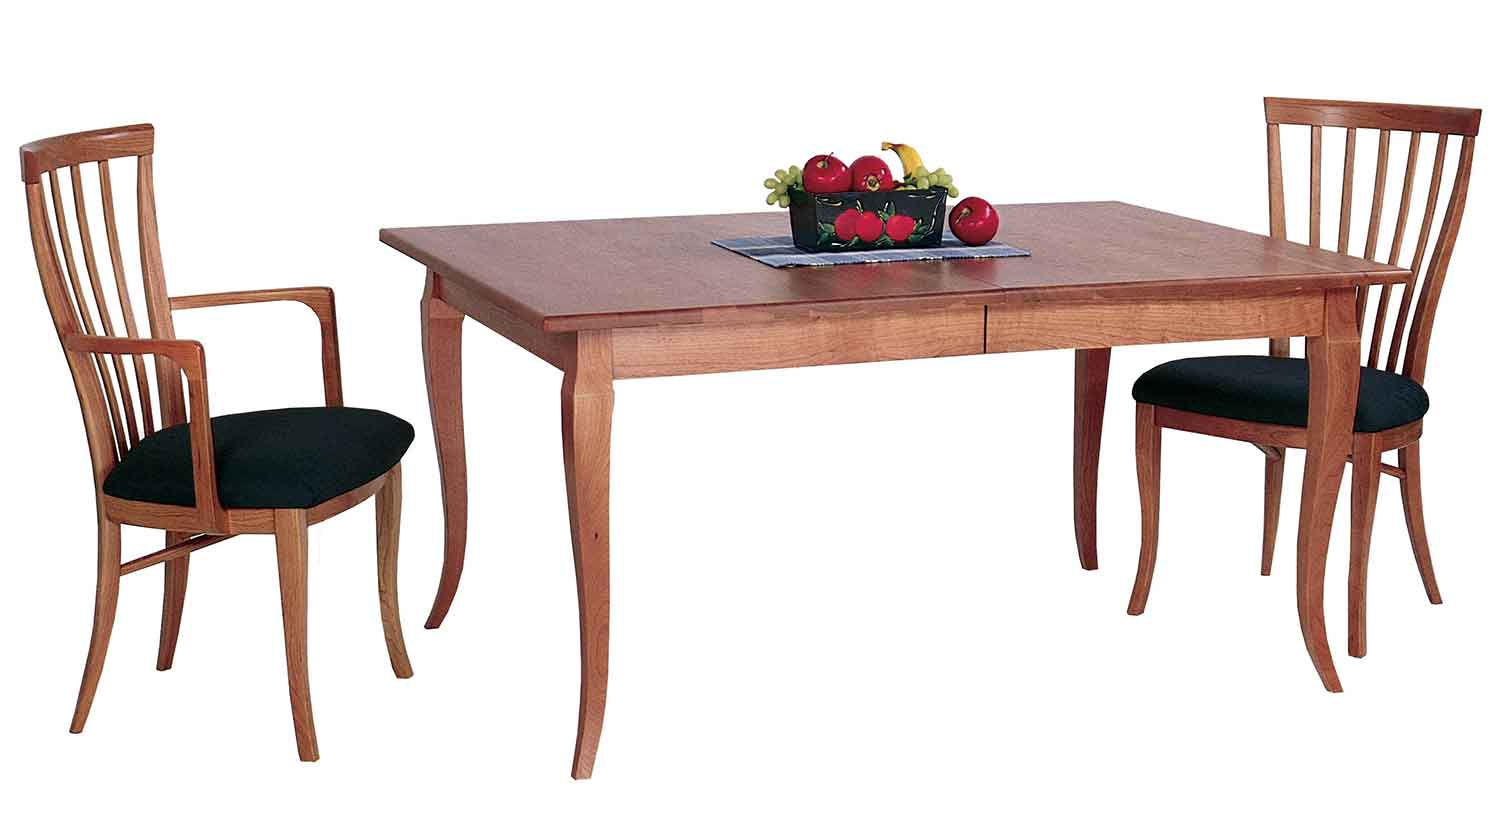 Circle Furniture French Country Table Designer Dining Table Boston